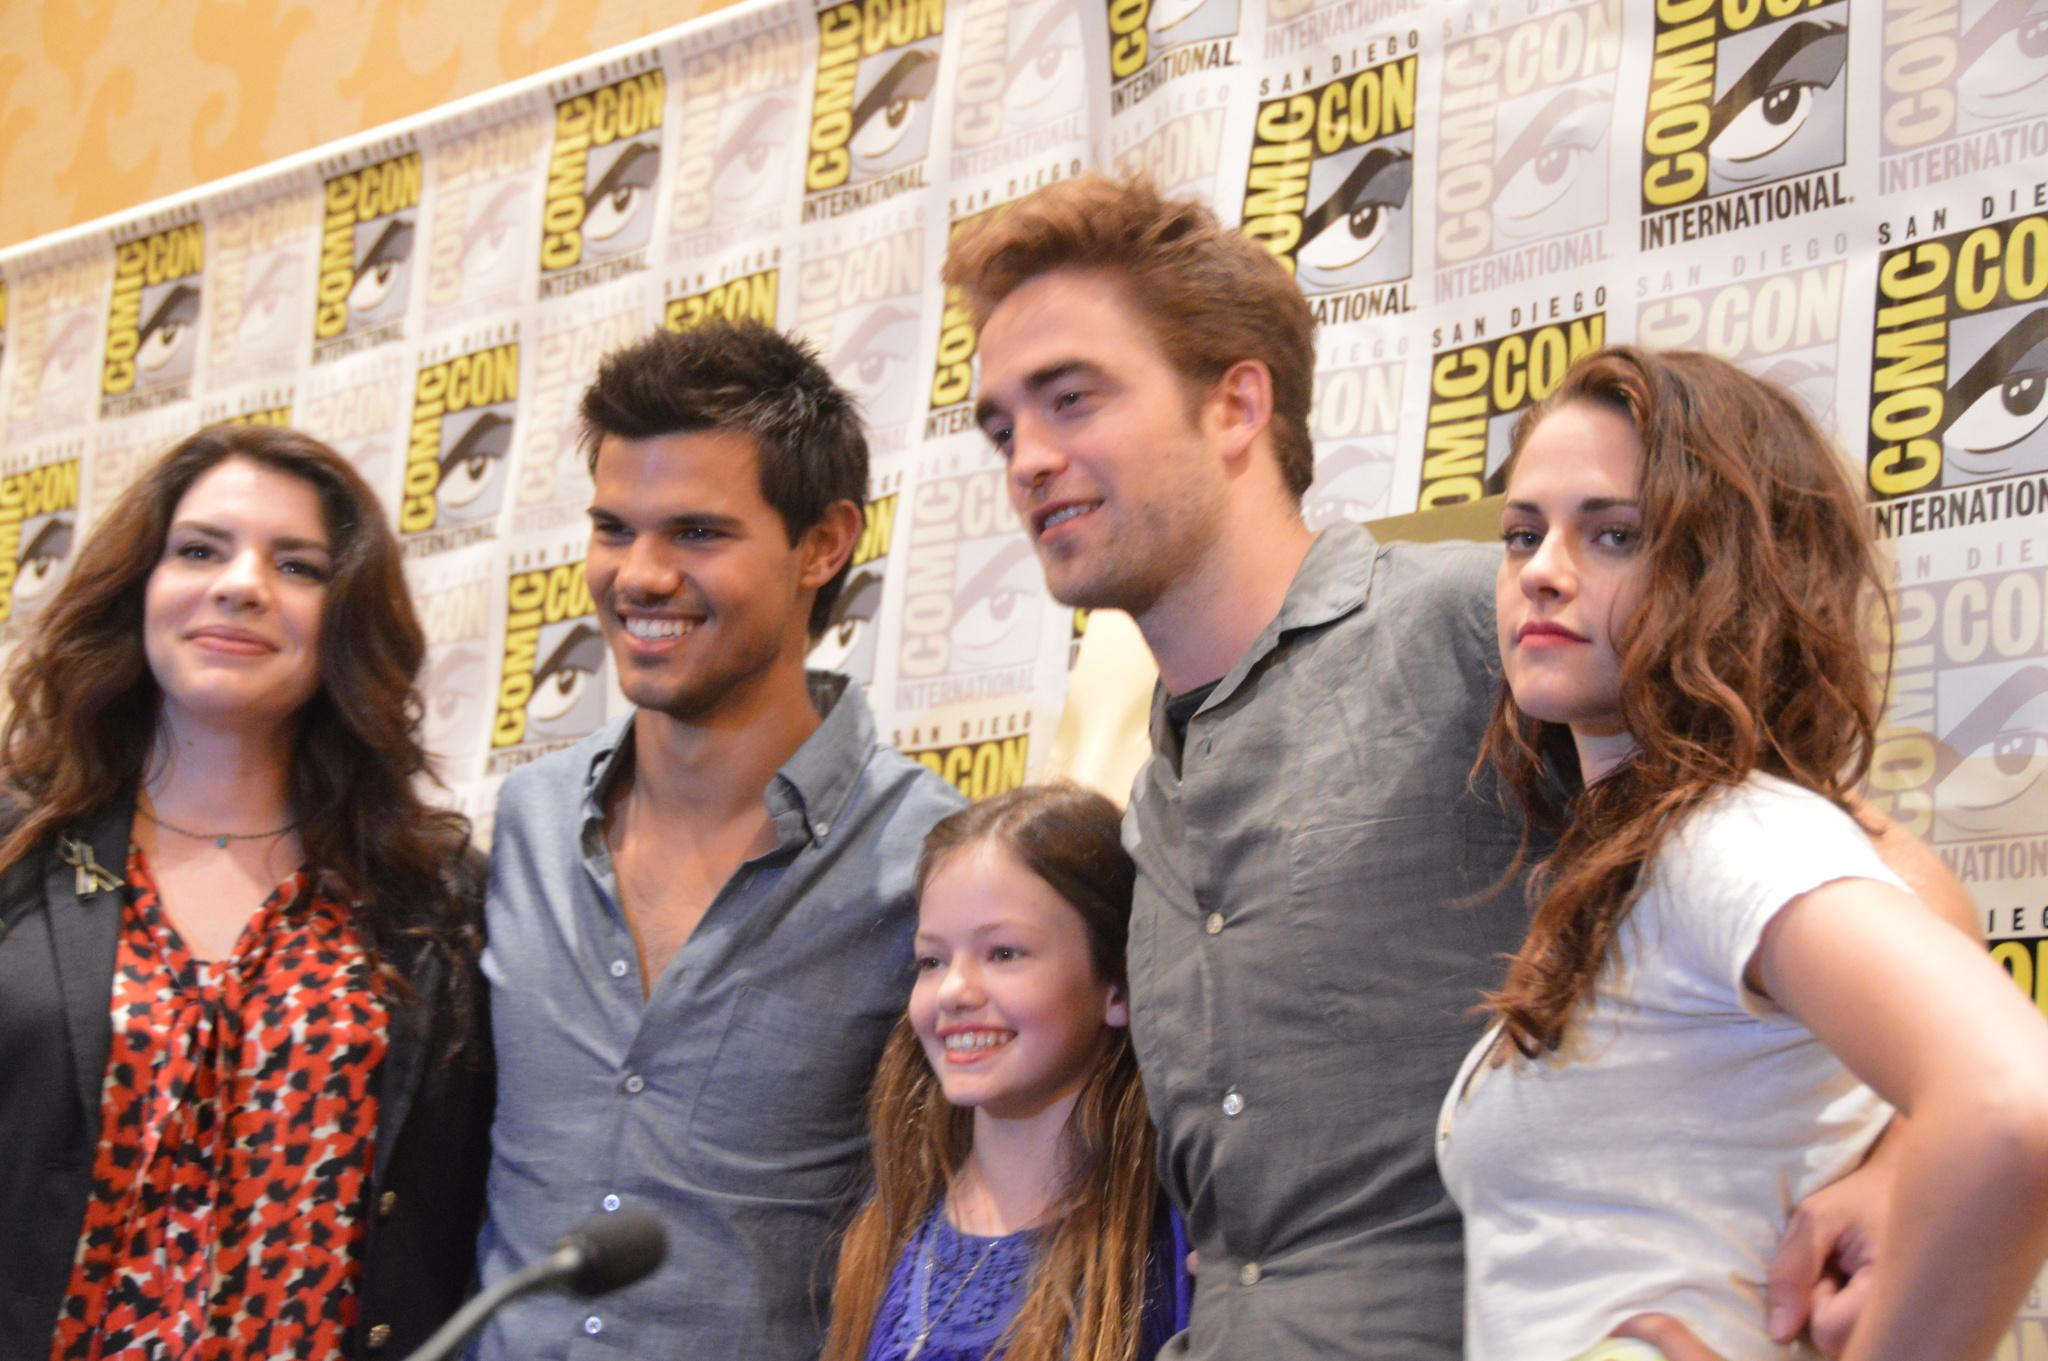 taylor-lautner,-robert-pattinson,-stephenie-meyer-and-mackenzie-foy-at-event-of-the-twilight-saga_-breaking-dawn-part-2-large-picture